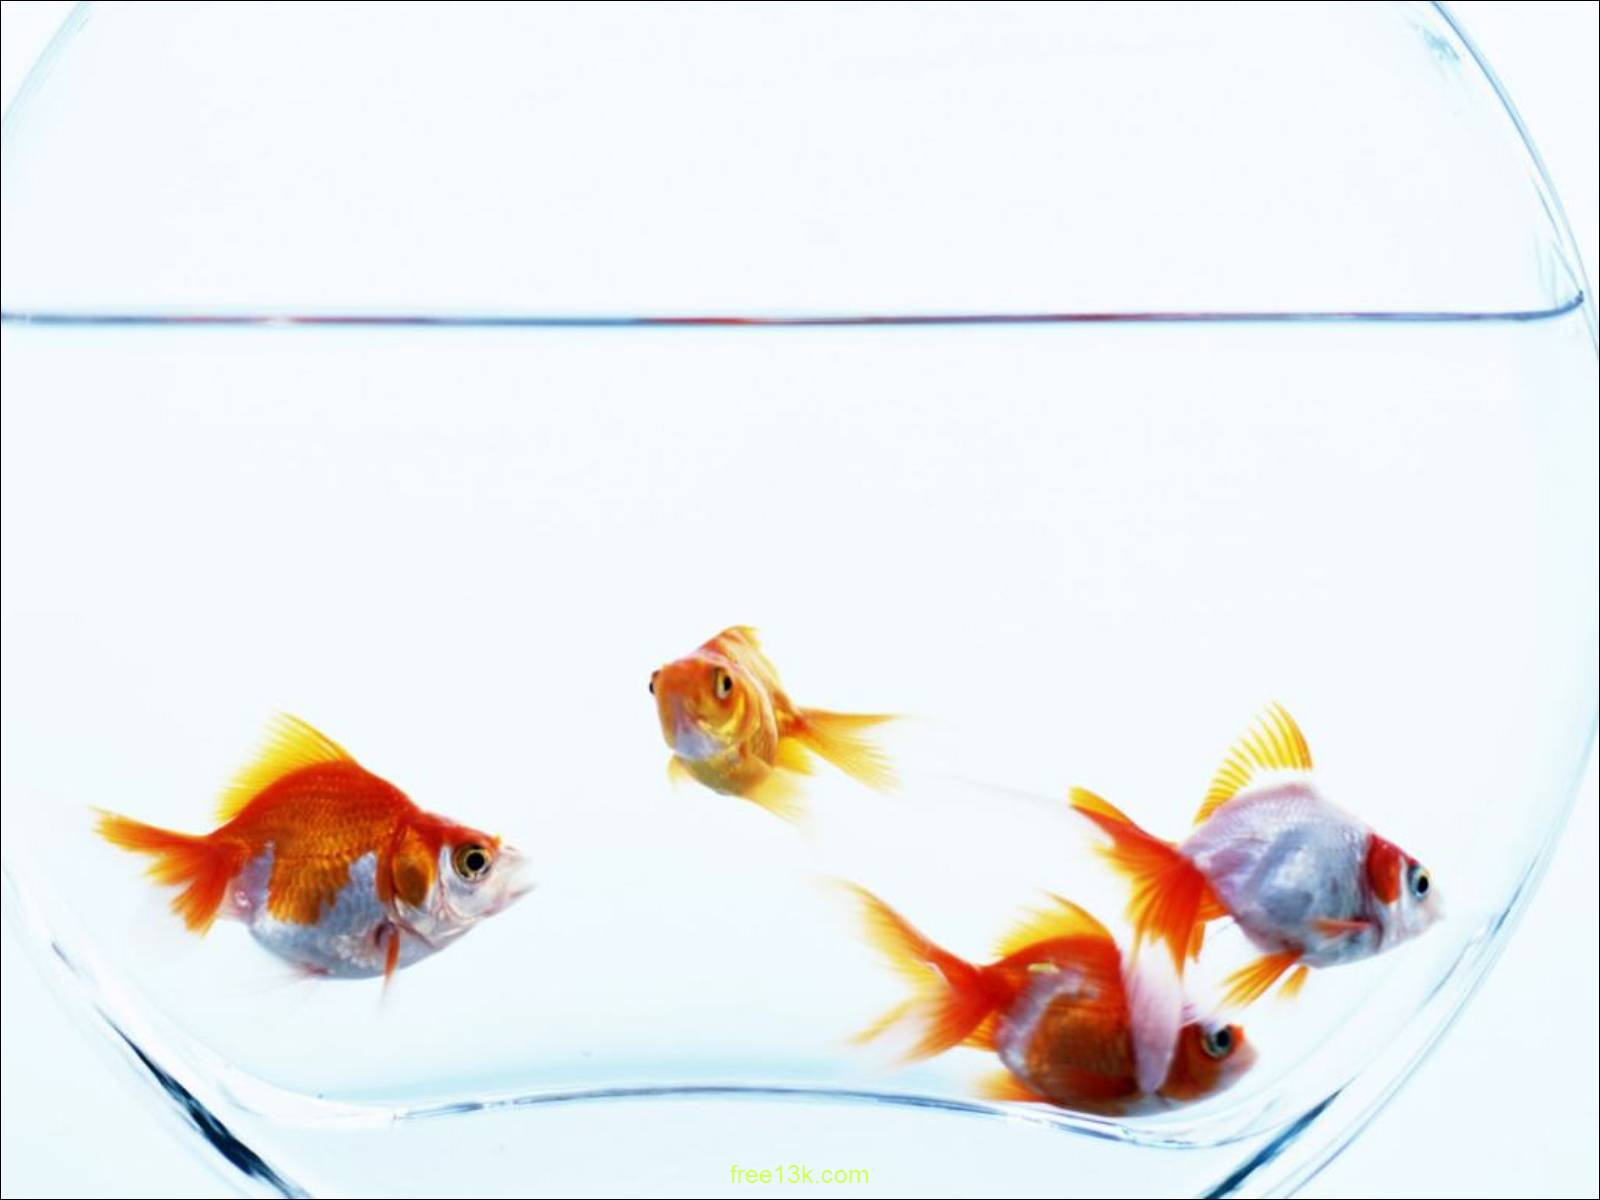 Download Free Previous Animals Under water Goldfish aquarium wallpaper Wallpapers Backgrounds. The resolution of Previous Animals Under water Goldfish ...